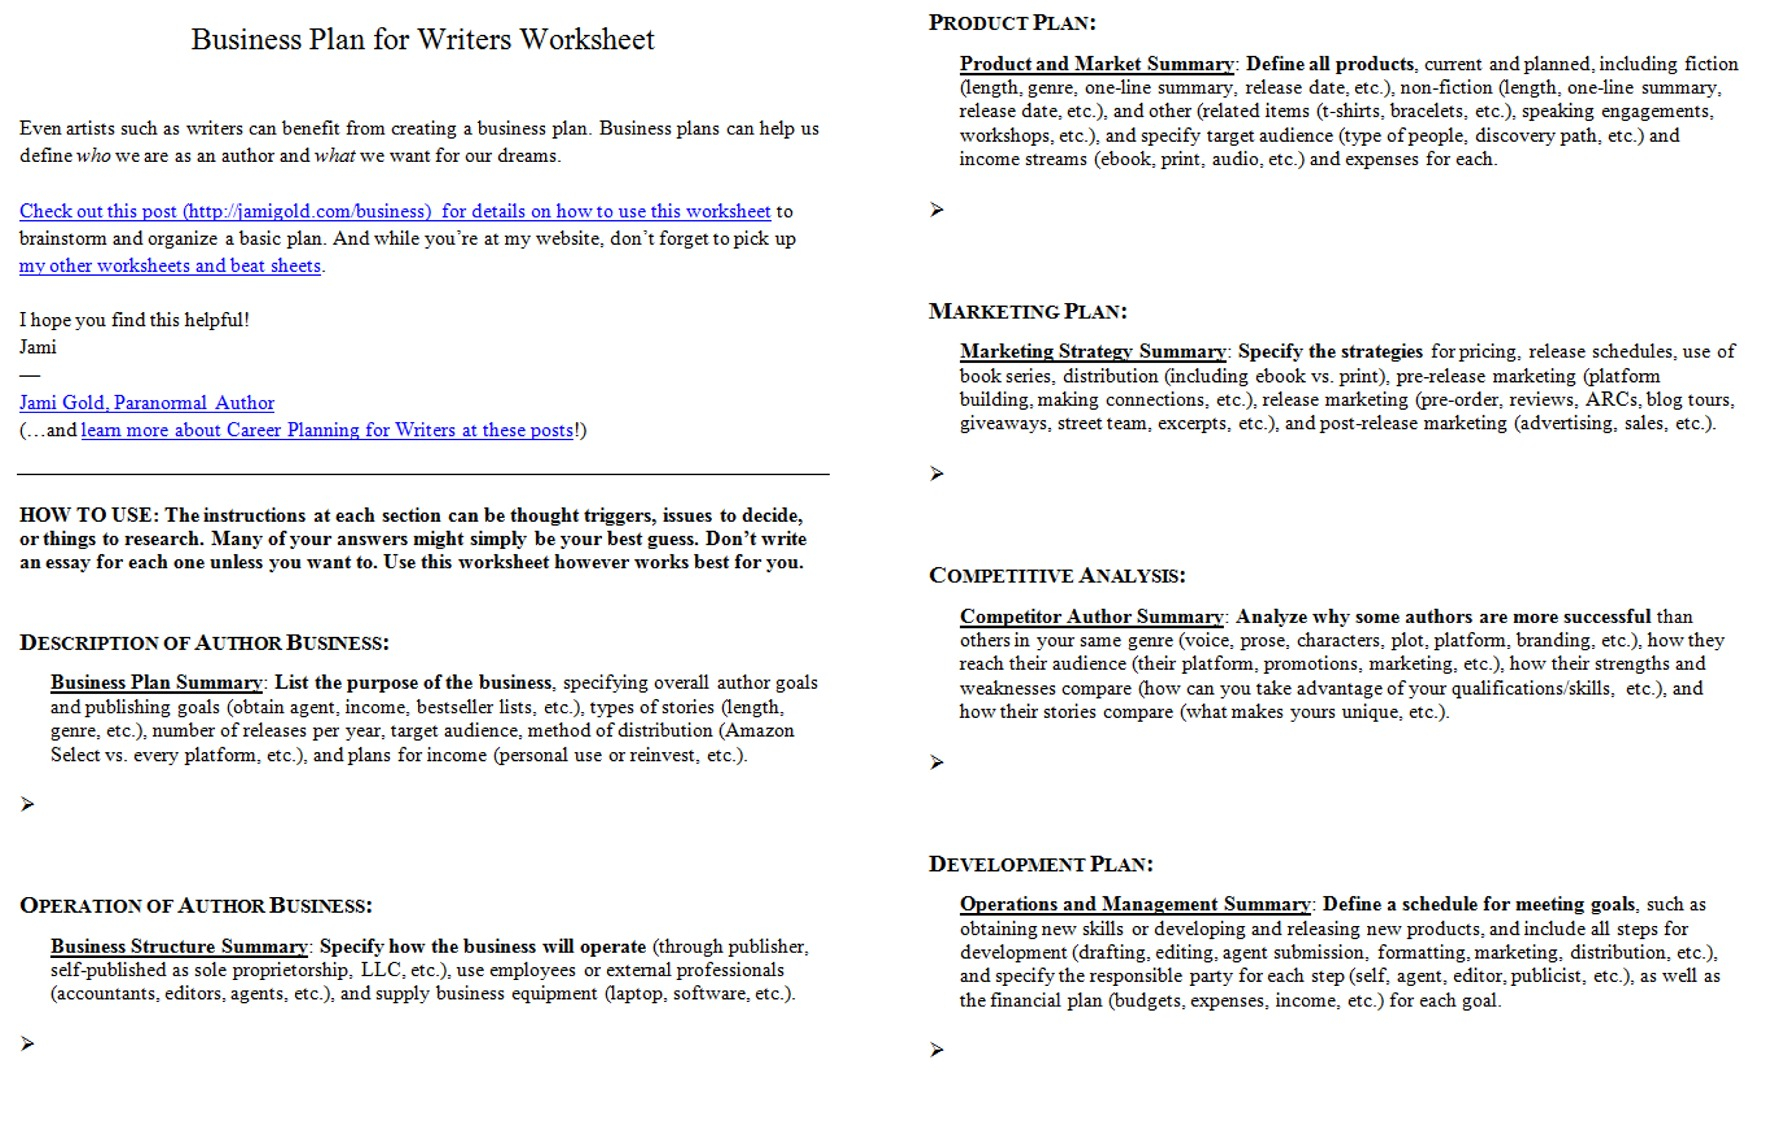 Weirdmailus  Seductive Worksheets For Writers  Jami Gold Paranormal Author With Outstanding Screen Shot Of Both Pages Of The Business Plan For Writers Worksheet With Delightful Geometry Angle Worksheets Also Simple Subject And Predicate Worksheets With Answers In Addition Evaluating Algebraic Expressions Worksheets Grade  And Organic Compounds Worksheet Biology As Well As Worksheets For Toddlers Free Printables Additionally Fun Third Grade Math Worksheets From Jamigoldcom With Weirdmailus  Outstanding Worksheets For Writers  Jami Gold Paranormal Author With Delightful Screen Shot Of Both Pages Of The Business Plan For Writers Worksheet And Seductive Geometry Angle Worksheets Also Simple Subject And Predicate Worksheets With Answers In Addition Evaluating Algebraic Expressions Worksheets Grade  From Jamigoldcom